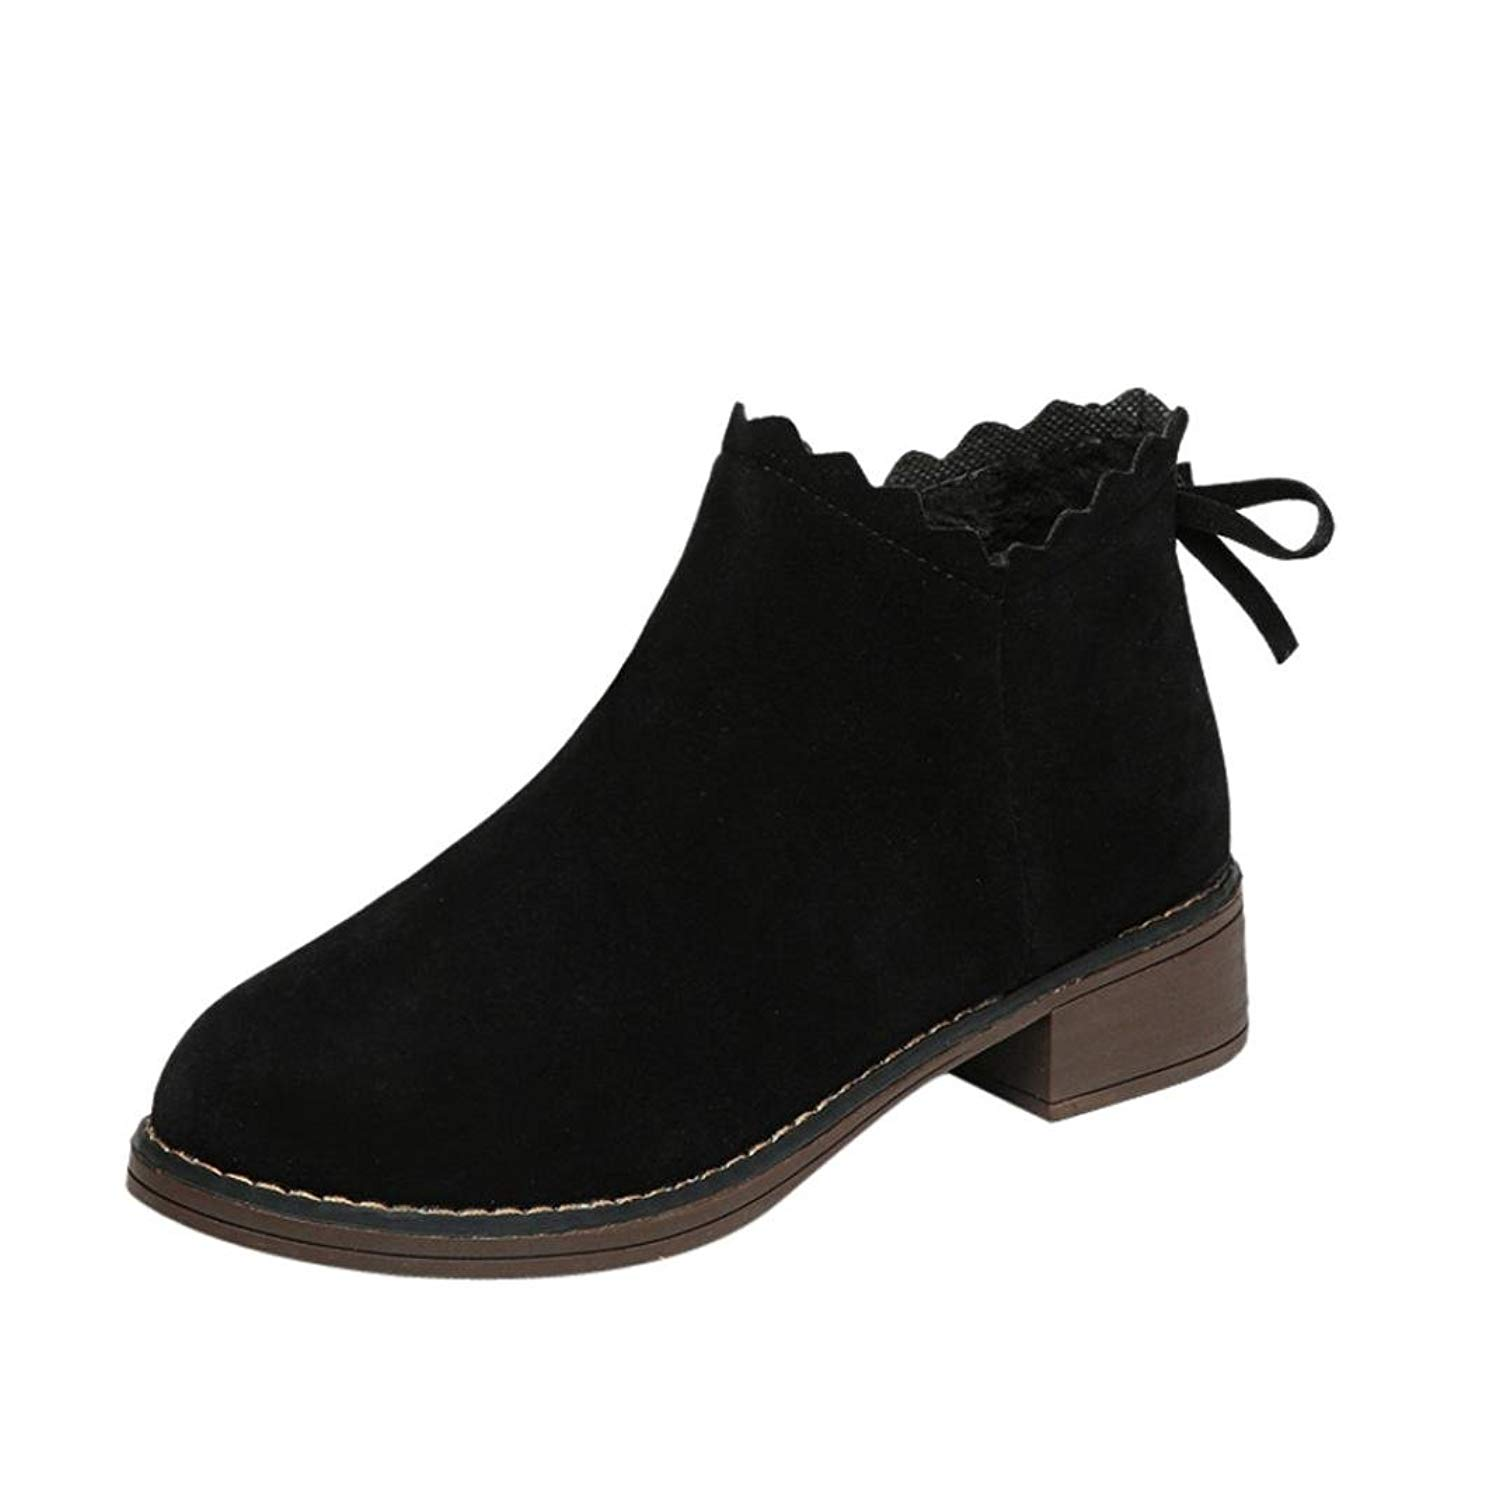 6171ff100ae Cheap Western Ankle Boot, find Western Ankle Boot deals on line at ...